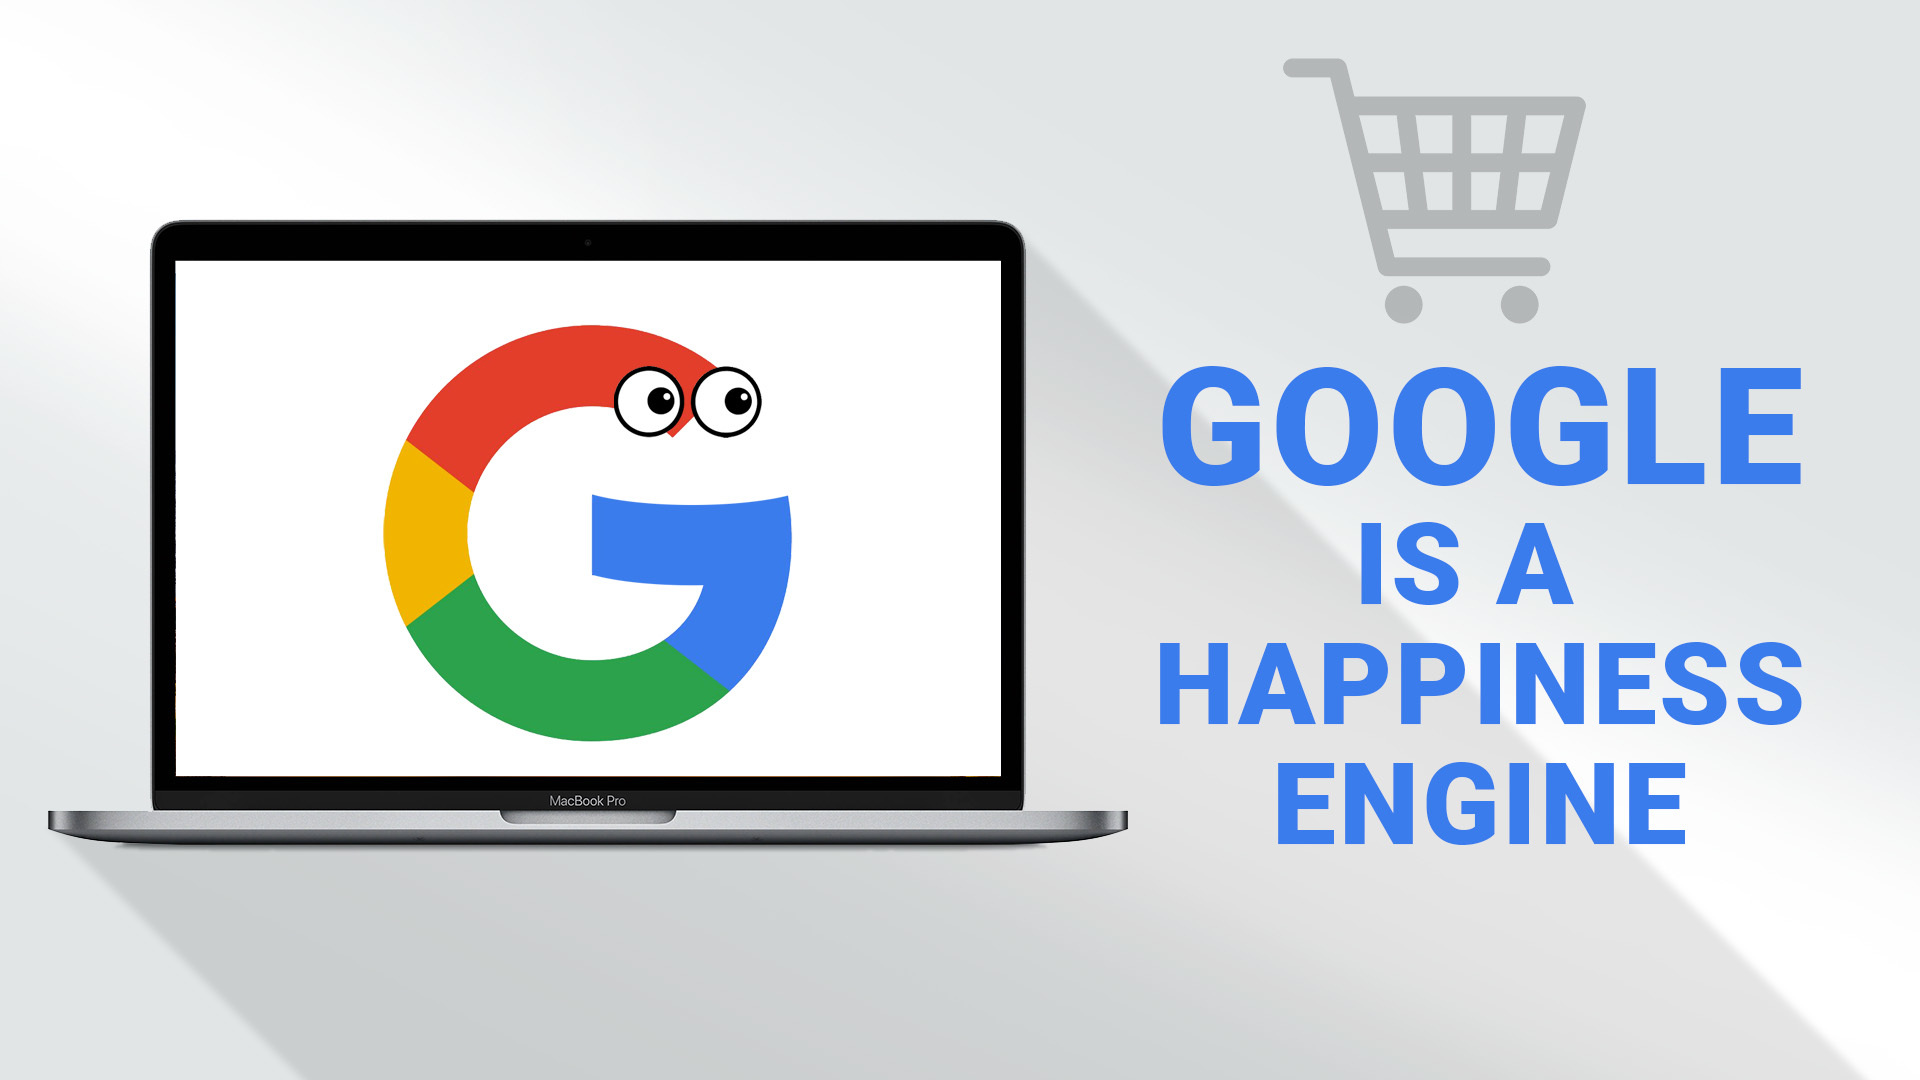 Google is a Happiness Engine: How Your Ecommerce Site Can Win at Google